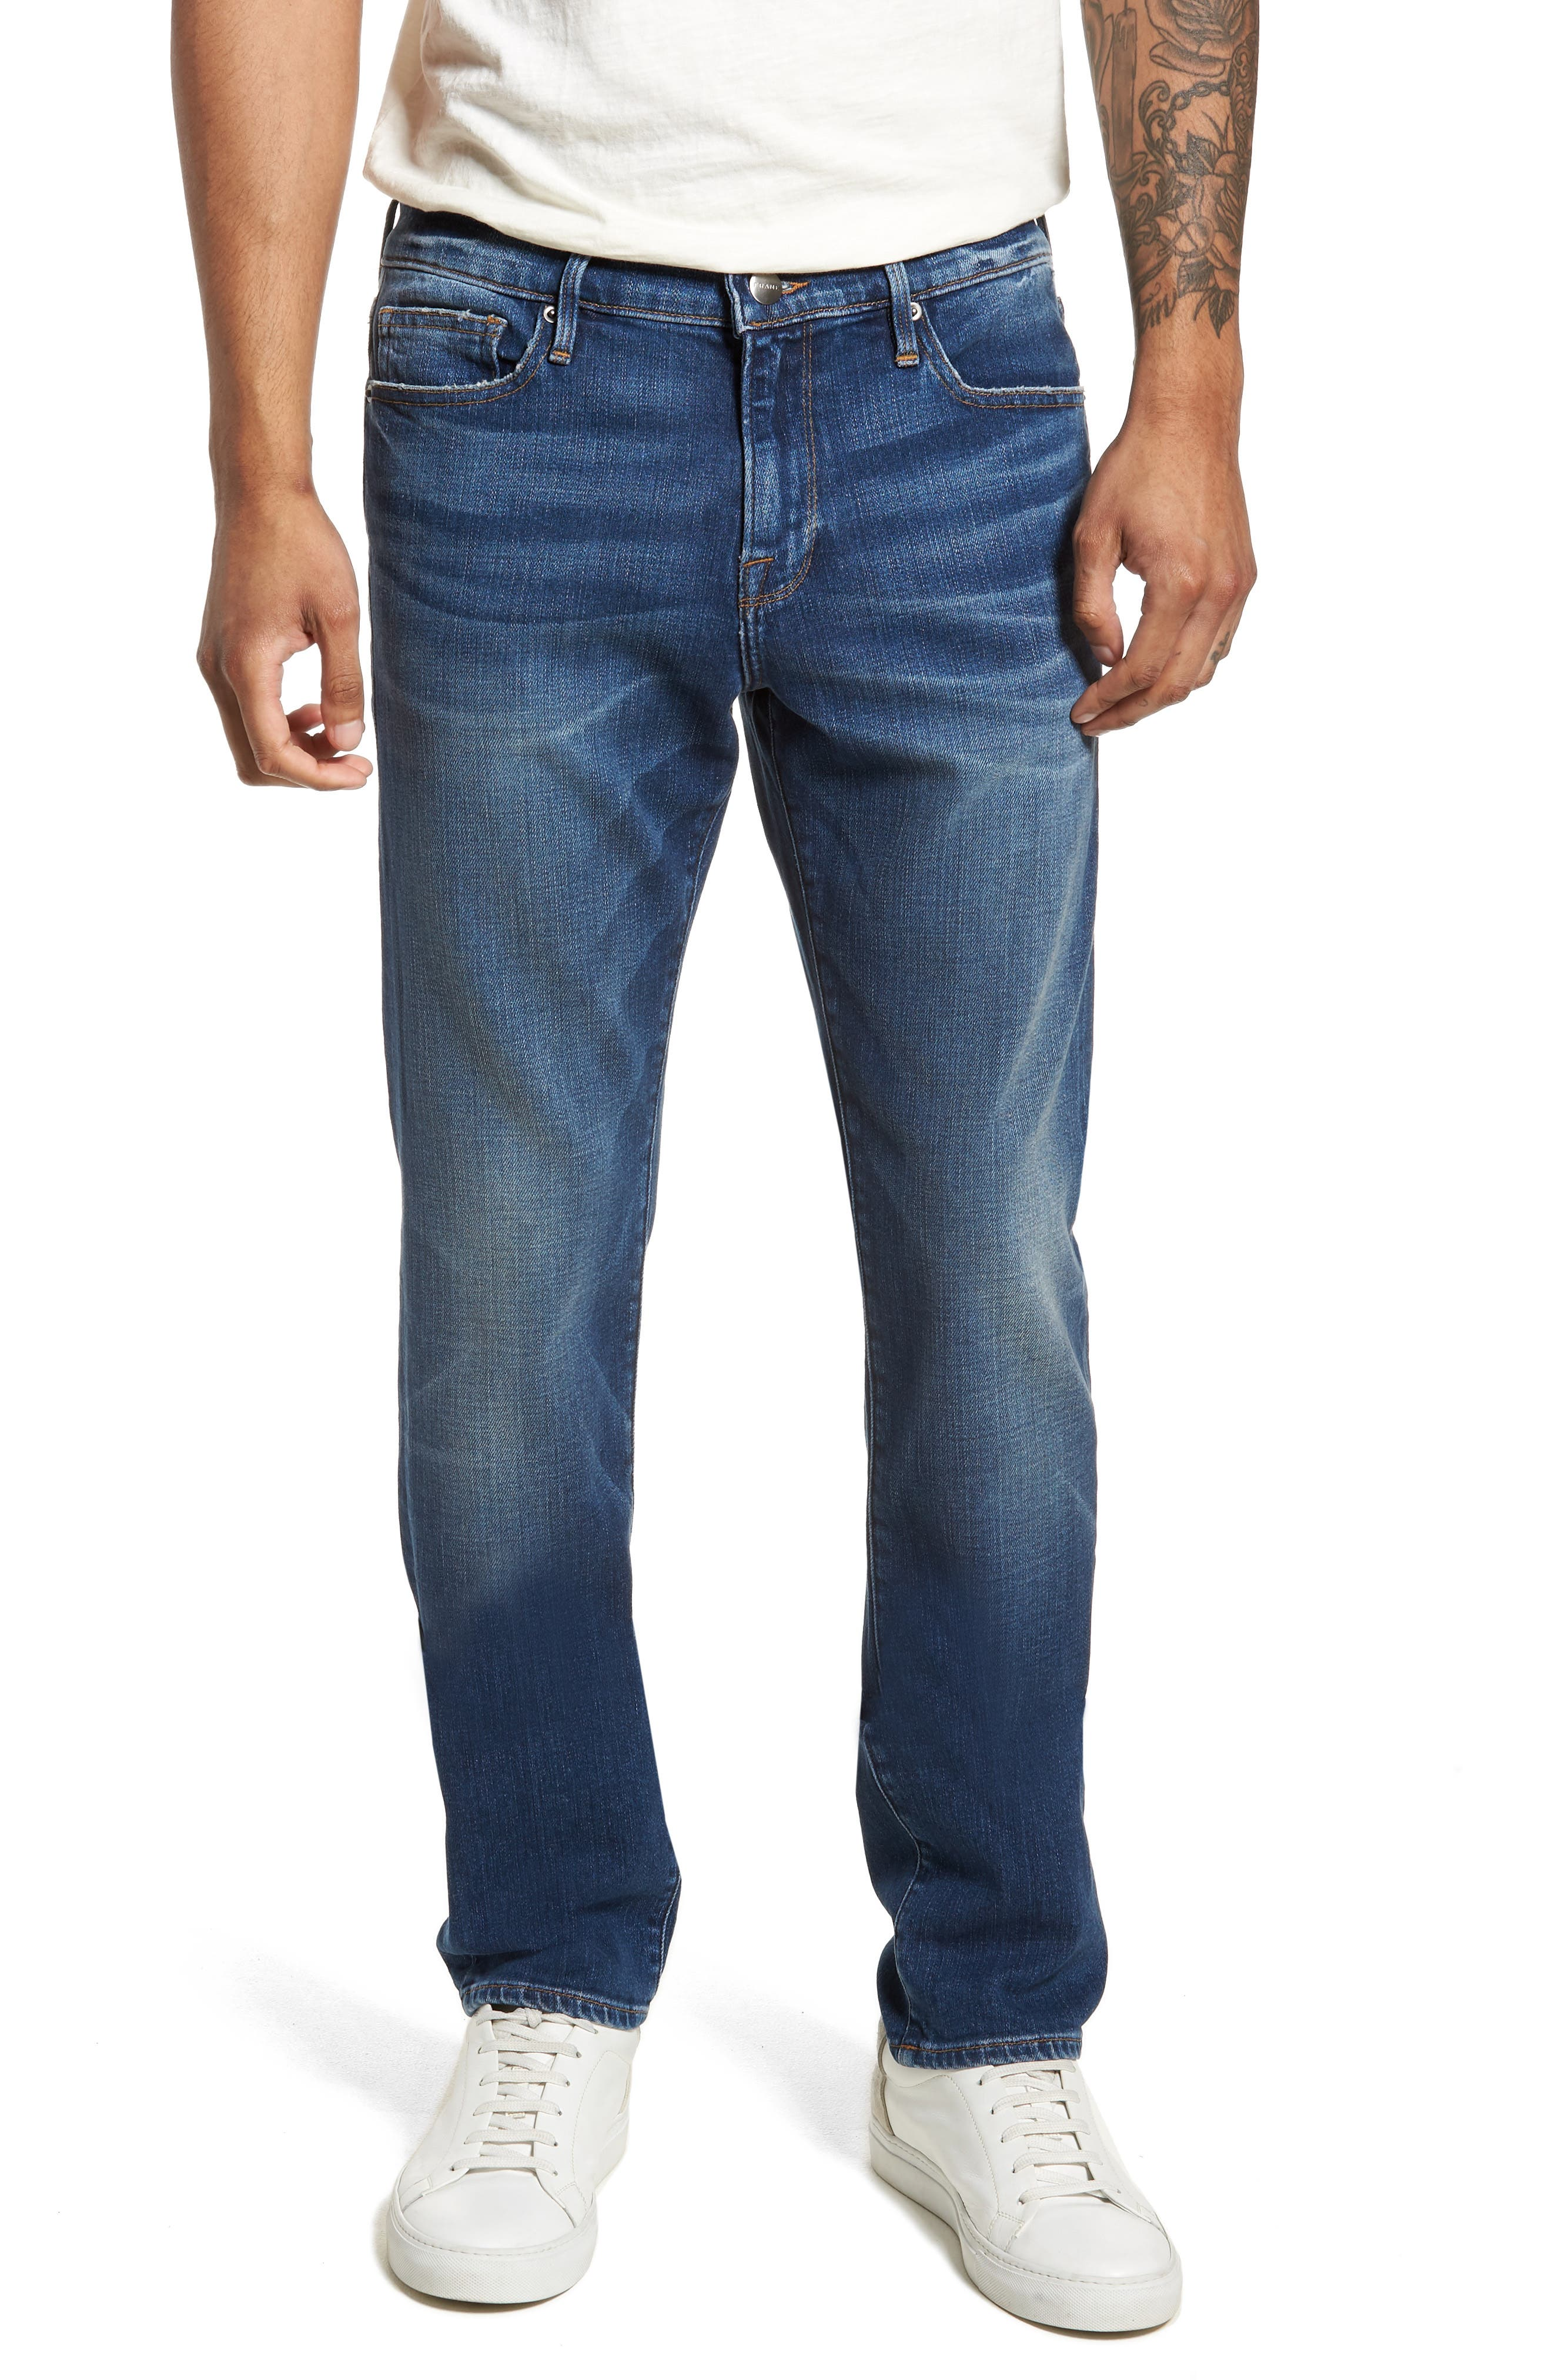 L'Homme Skinny Fit Jeans,                             Main thumbnail 1, color,                             Francis